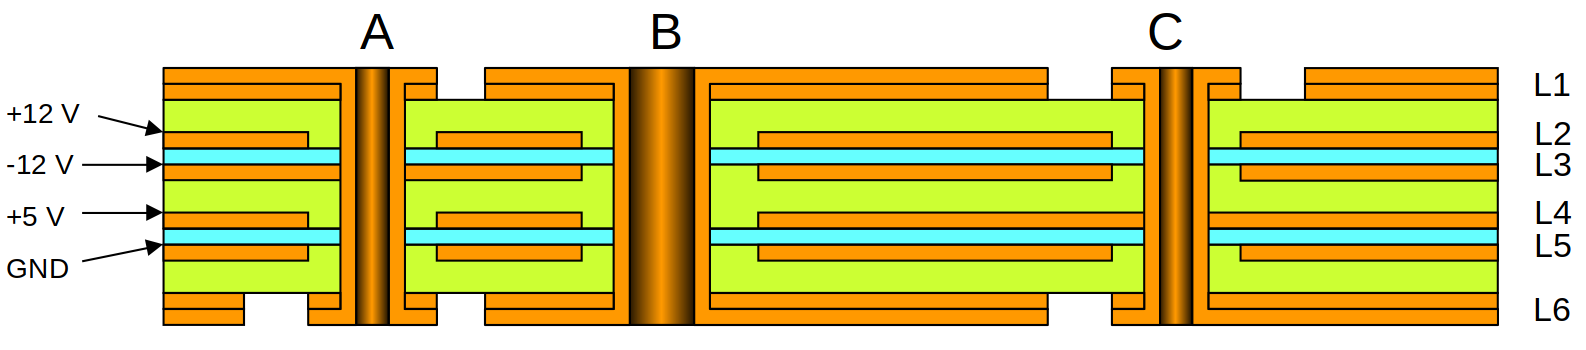 Embedded Capacitance layer in a multi-layer PCB with no blind via